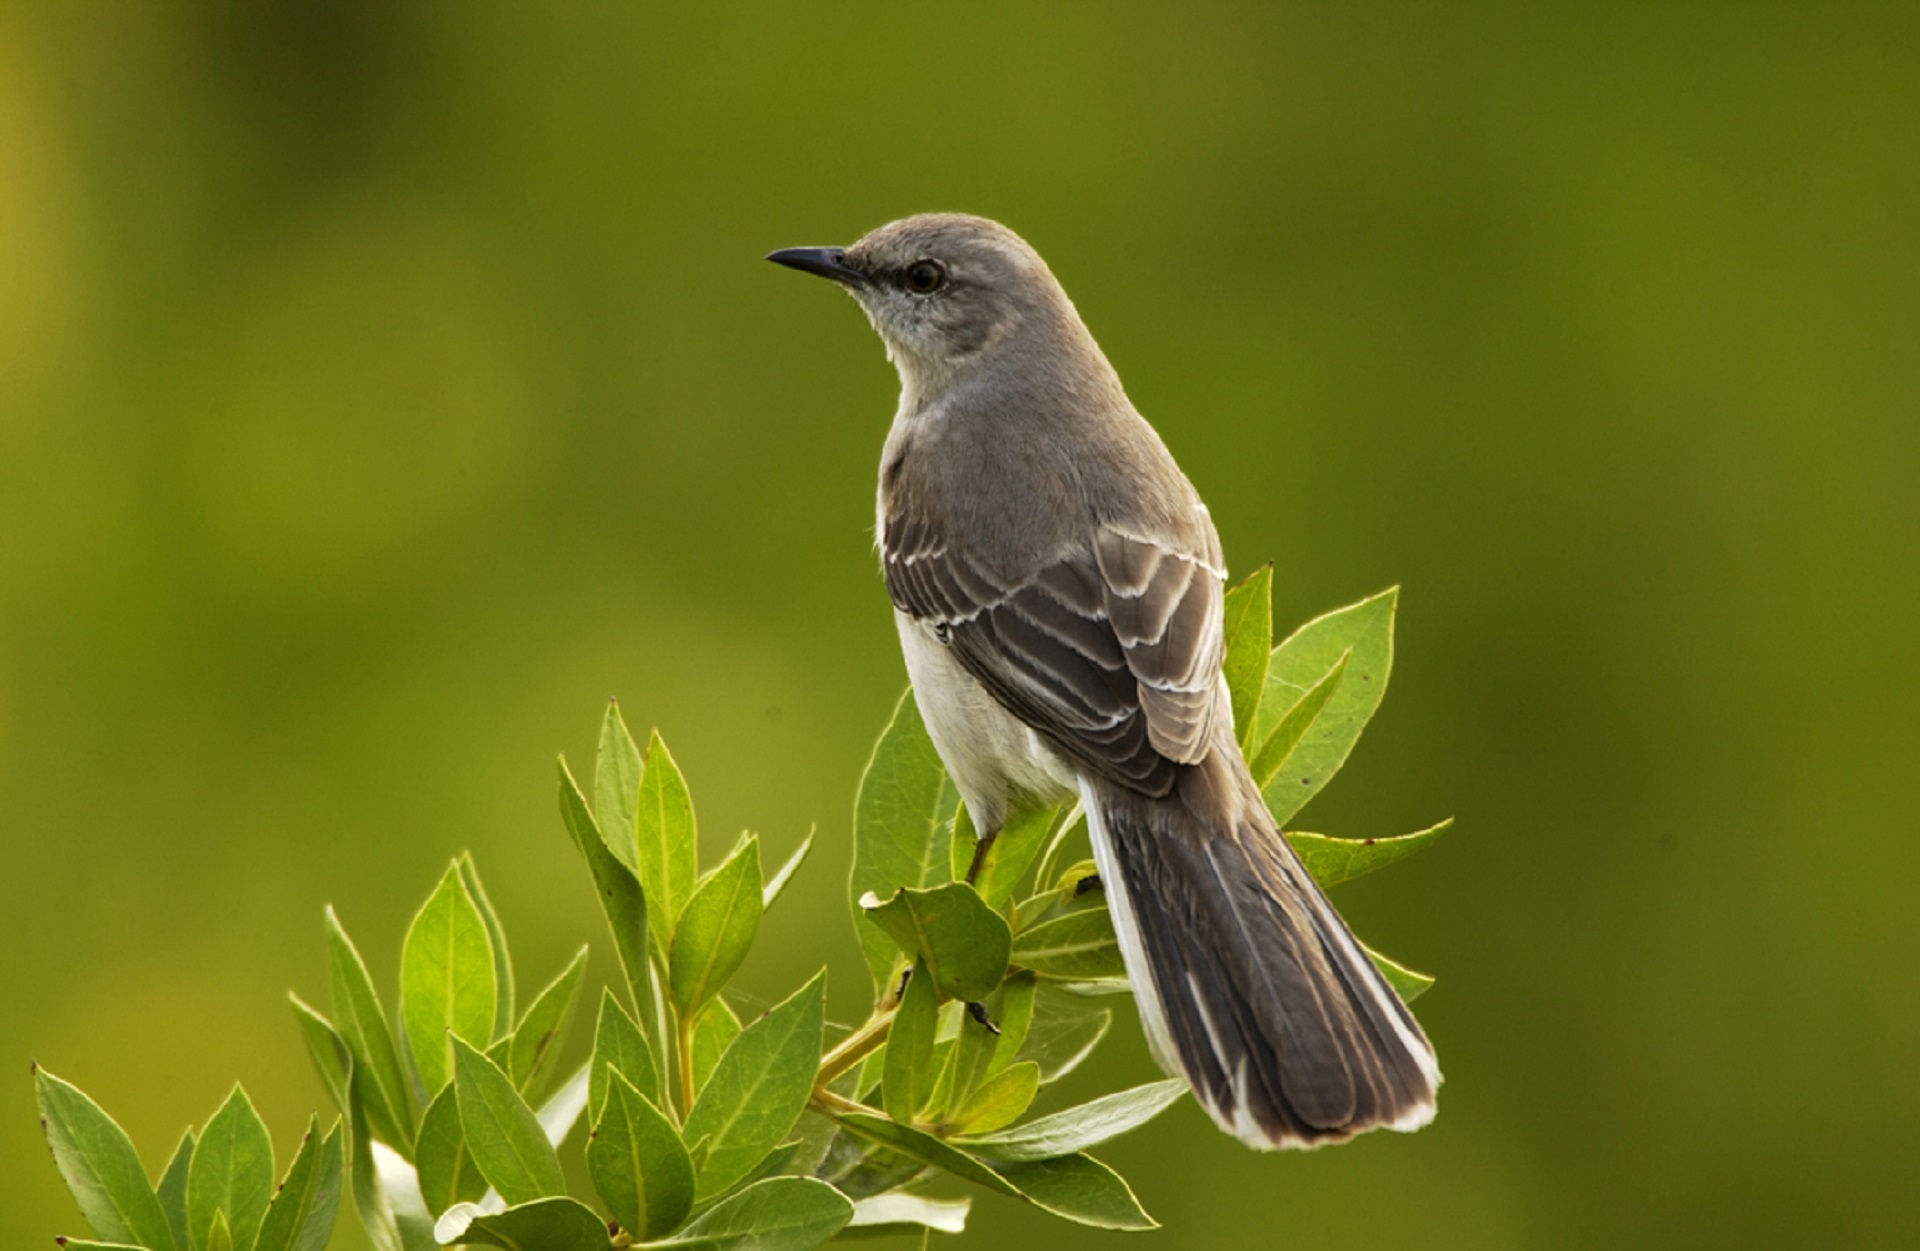 Mockingbird on the branch photo